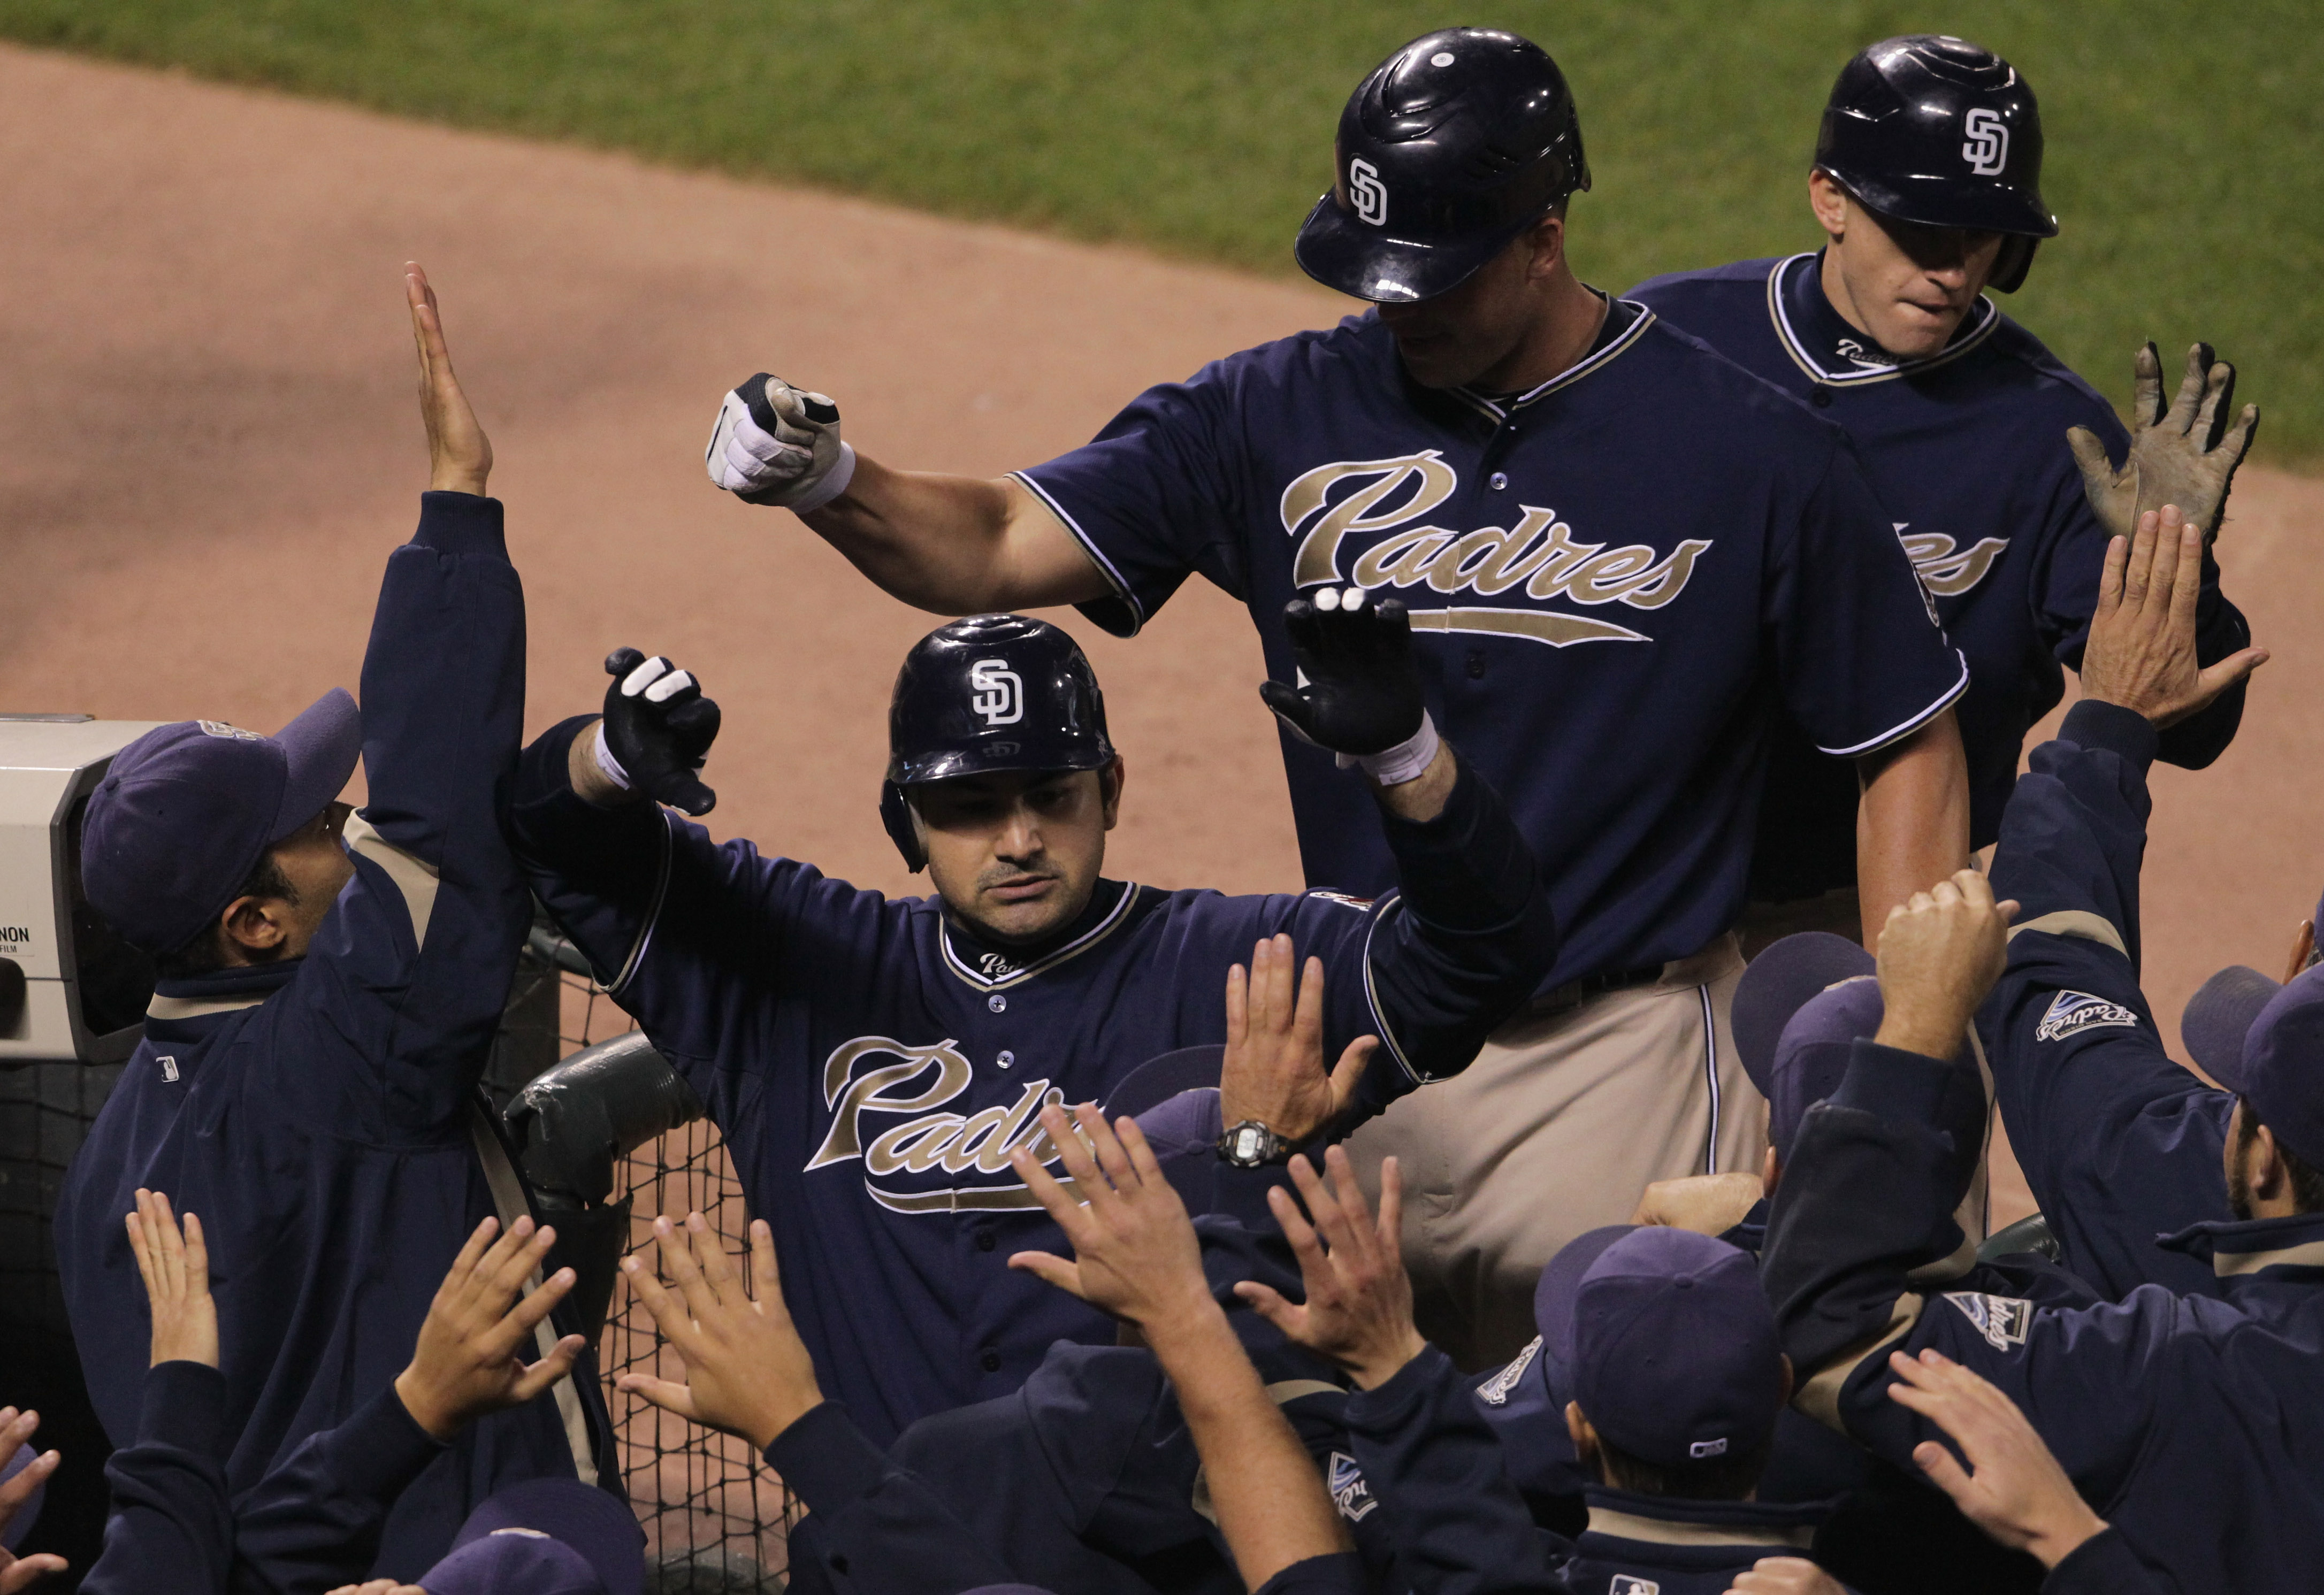 SAN FRANCISCO - OCTOBER 01:  Adrian Gonzalez #23 of the San Diego Padres is congratulated by teammates after hitting a three run home run during the third inning against the San Francisco Giants October 1, 2010 in San Francisco, California.  (Photo by Jus